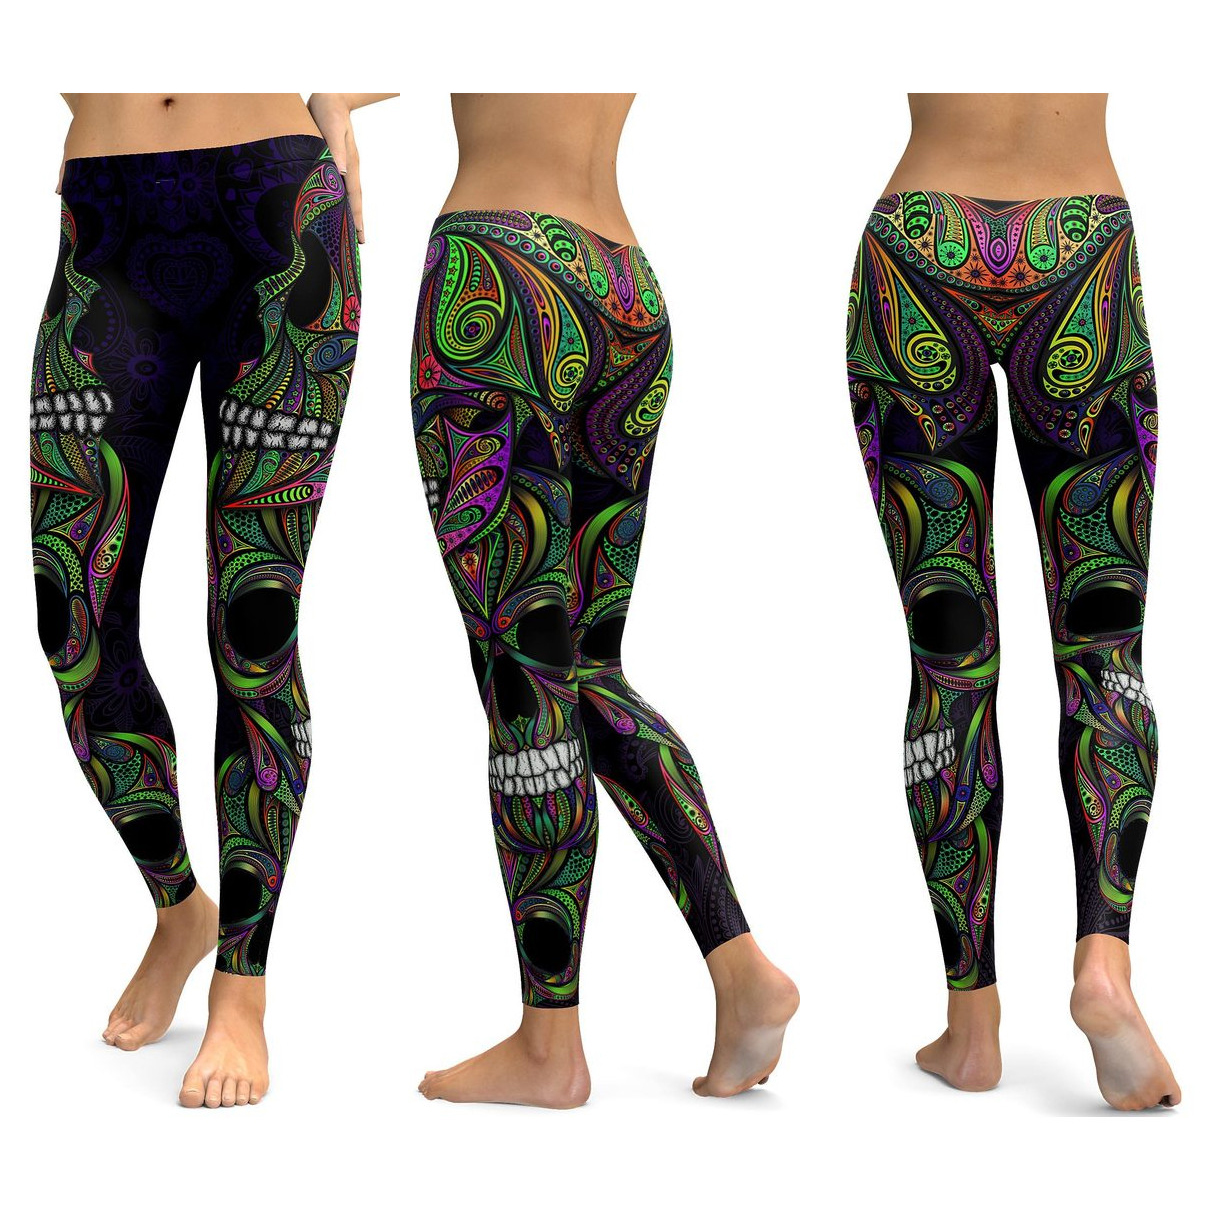 Skull Leggings Yoga Pants Women Sports Pants Fitness Running Sexy Push Up Gym Wear Elastic Slim Workout Leggings 34